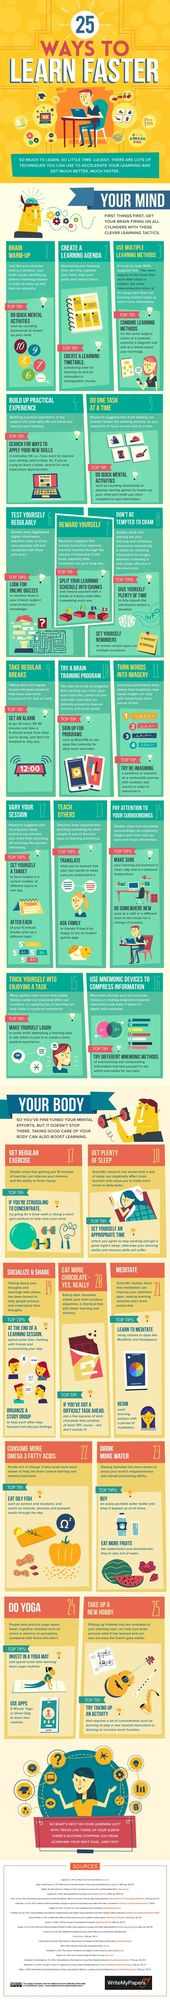 25 Ways to Learn Faster (Infographic) {Study Help | To Make Your Study a Success | To Study With the Right Technique | Study Success Can Be Planned | Easily Study | Examine Existence} with CENTRAL Learning. {Free Learning Type Test! | | e-learning | LernCoaching | Lerntraining} – Pinmode